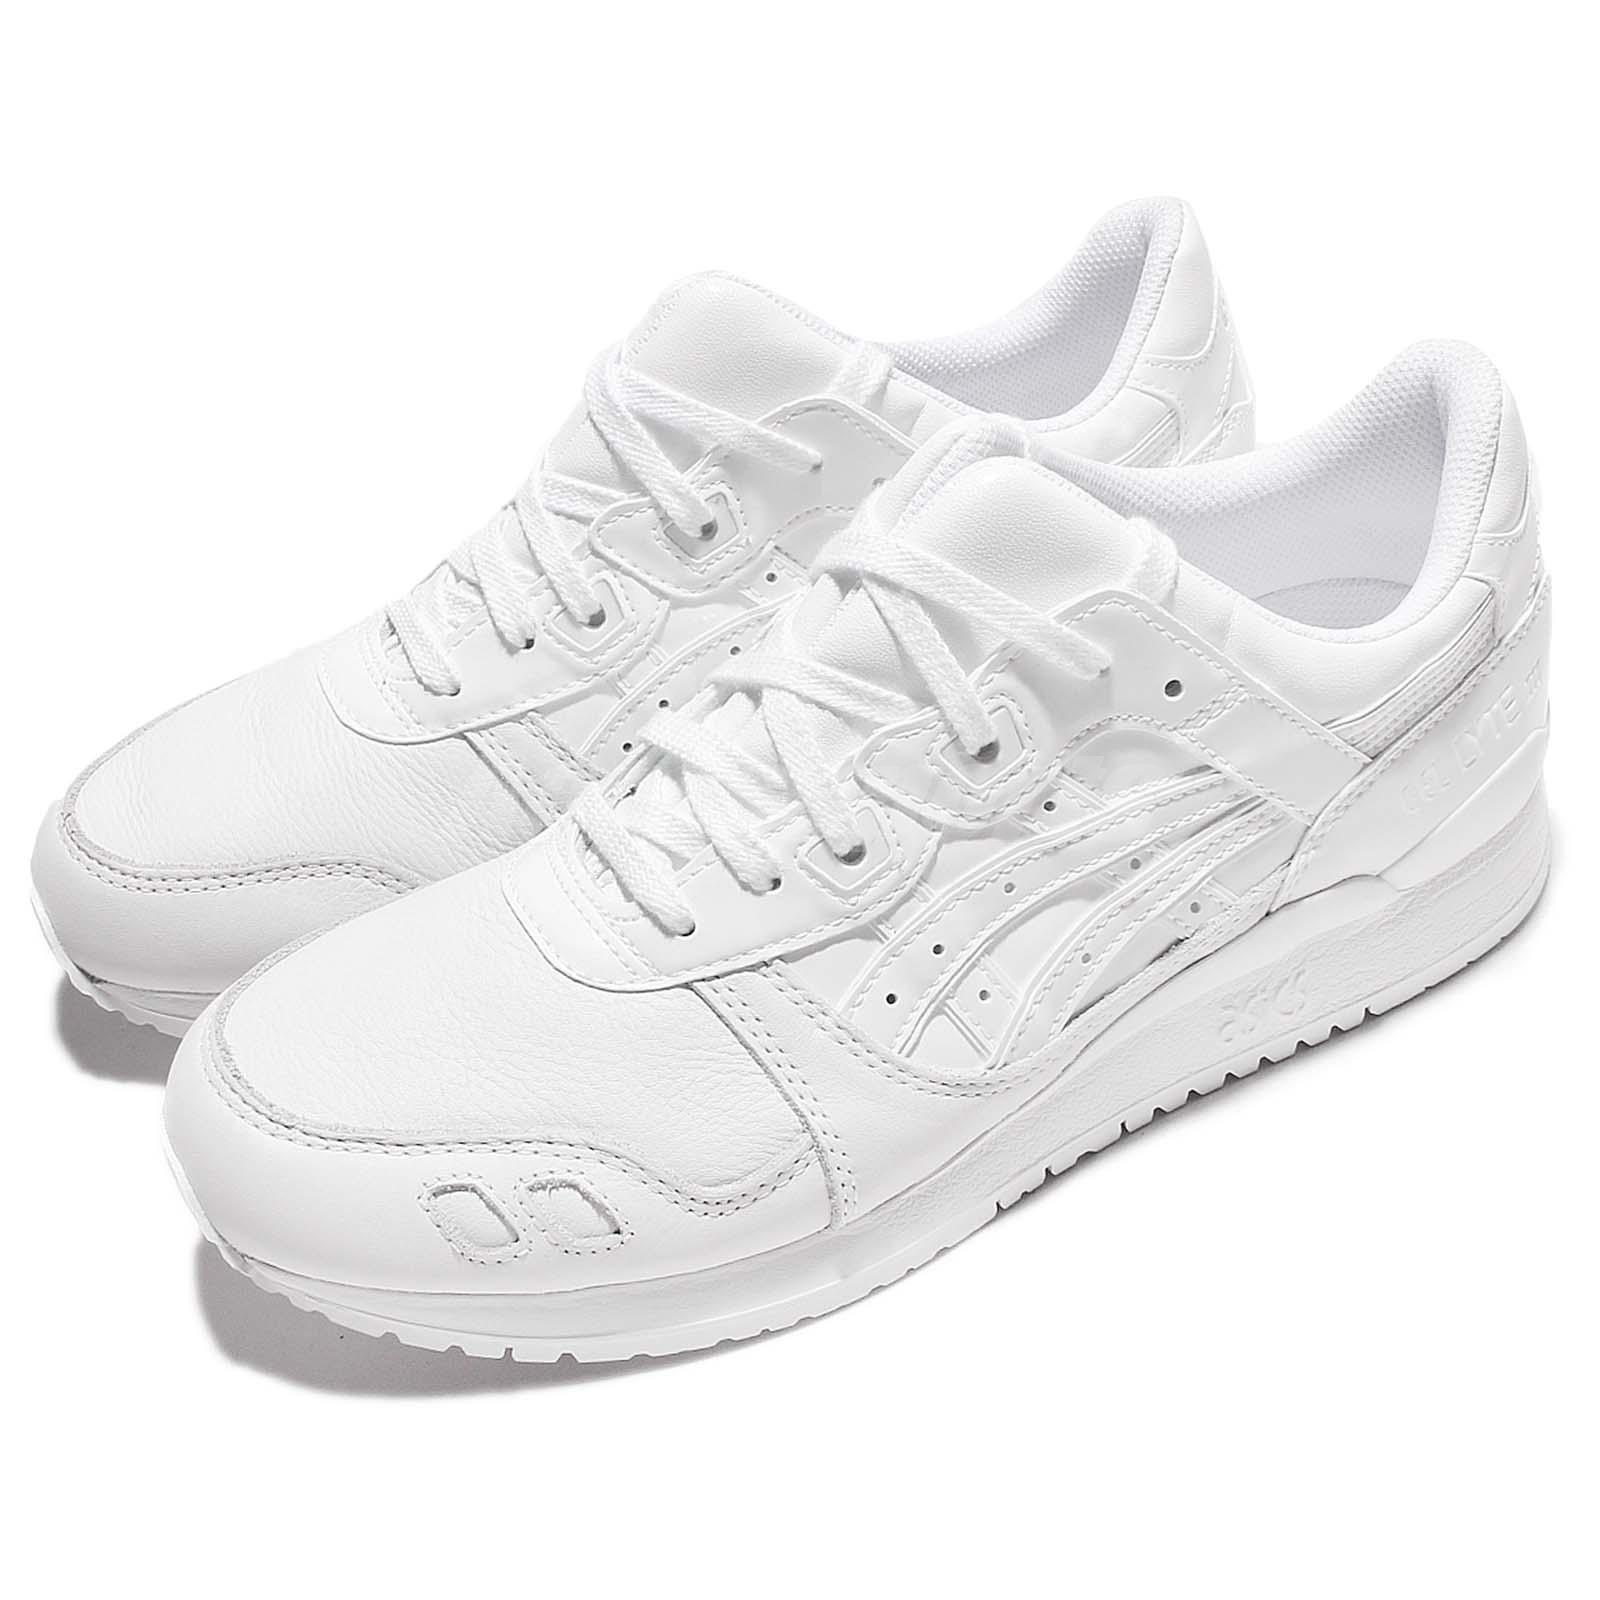 best sneakers 87501 f6589 Details about Asics Tiger Gel-Lyte III 3 Triple White Men Running Shoes  Sneakers H7E1Y-0101